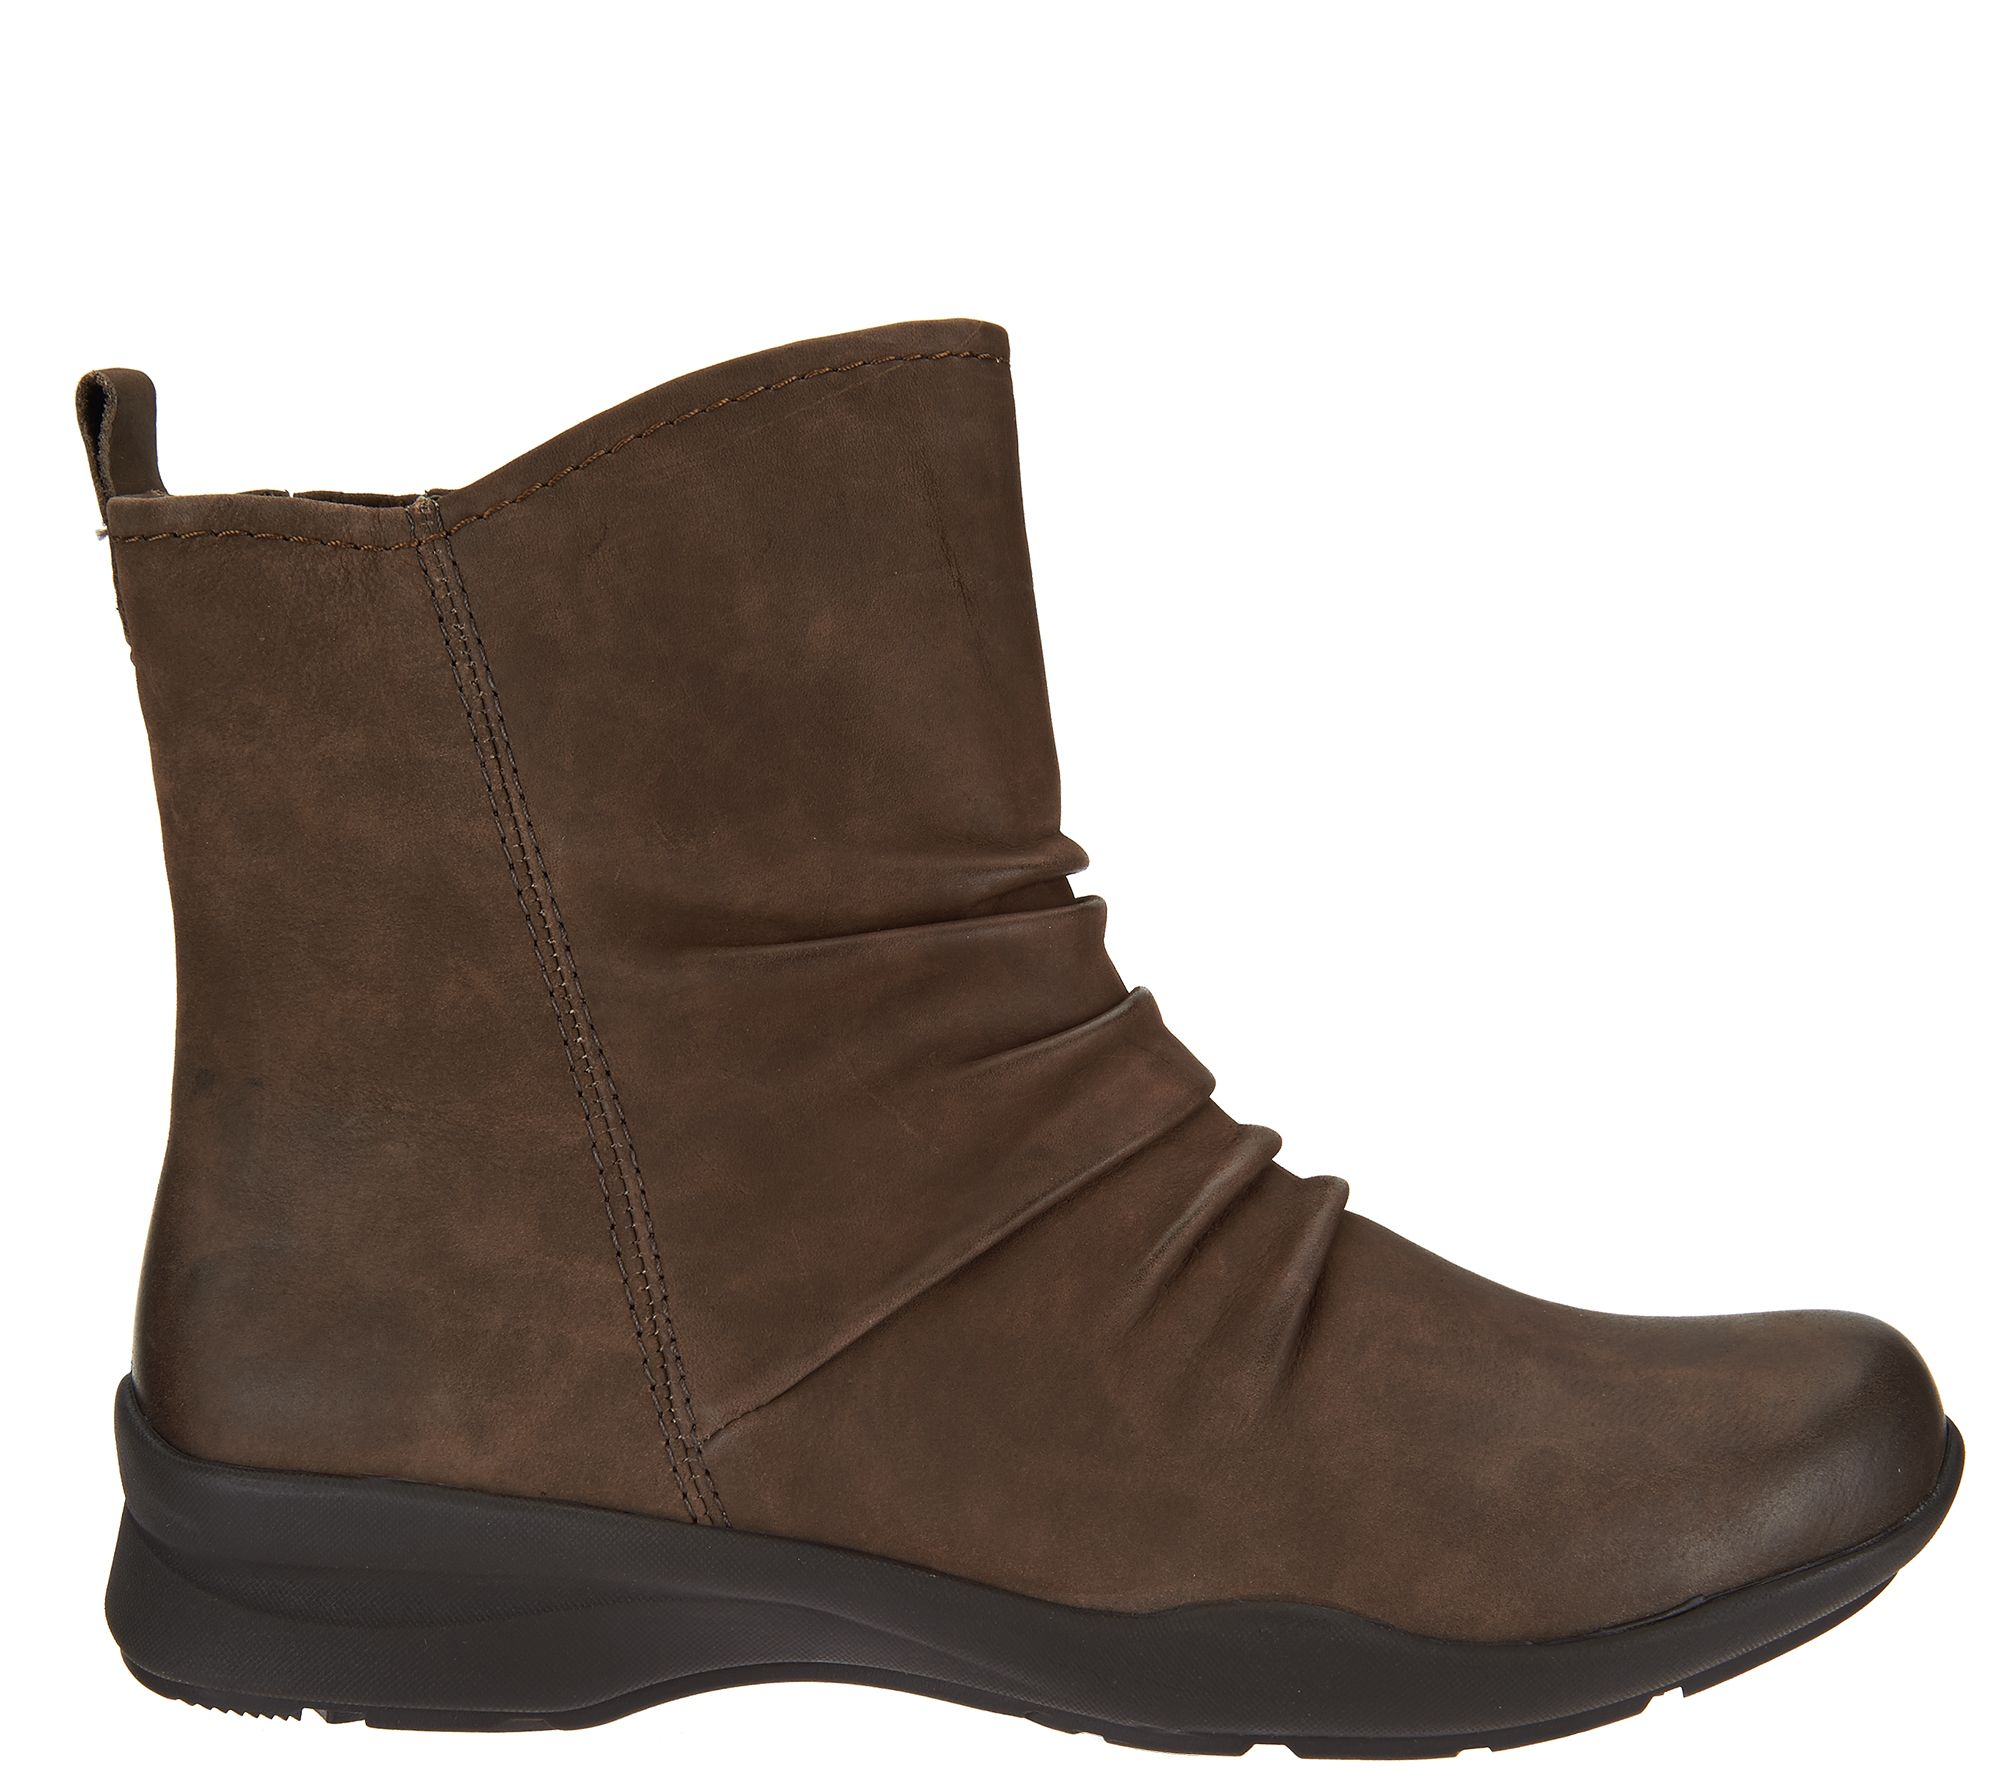 8561ea93748ff Earth Leather Boots with Ruching - Treasure - Page 1 — QVC.com